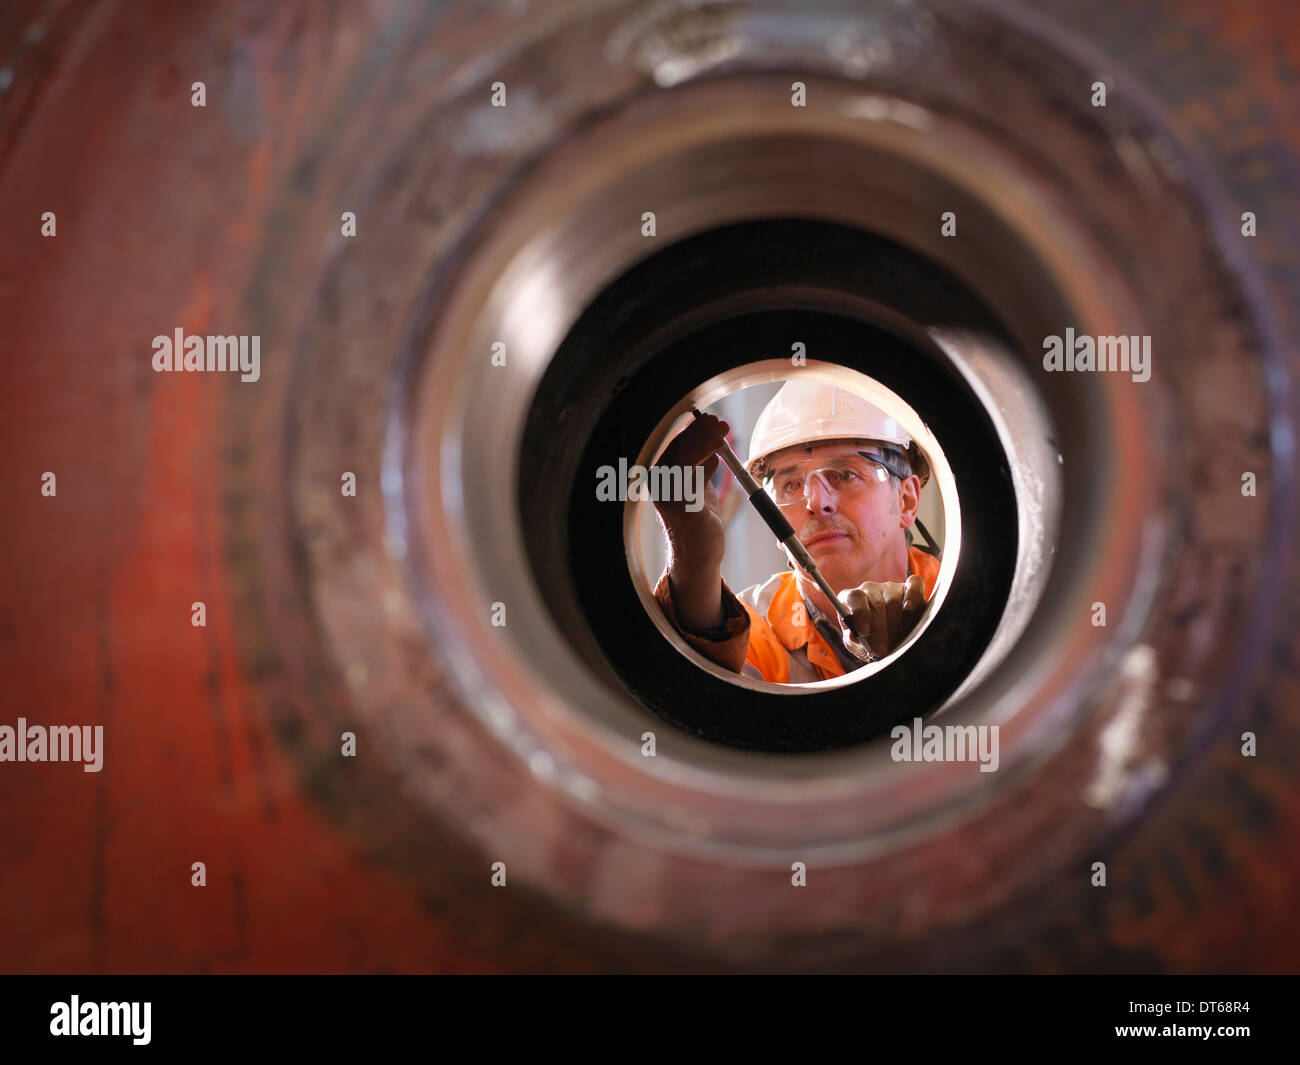 Engineer working on excavator parts in surface coal mine - Stock Image